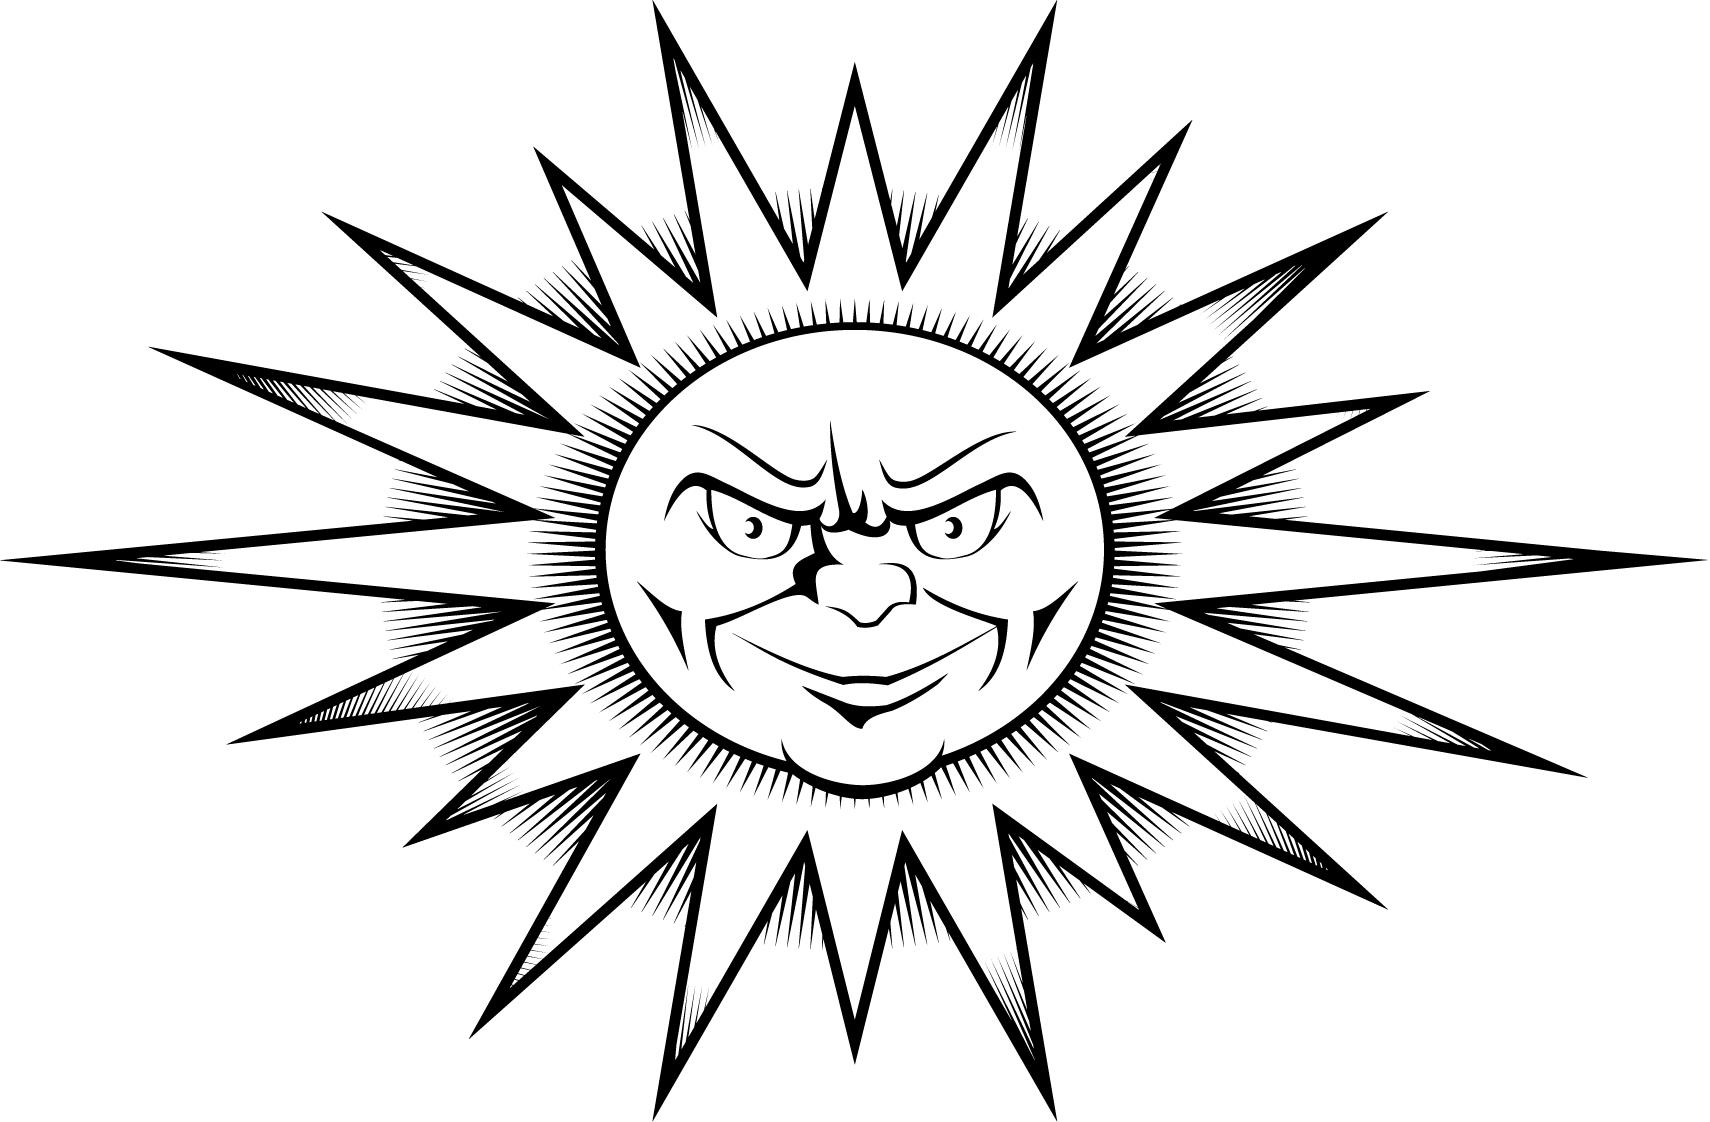 Worksheet Of A Sun Tattoo Design Printable Coloring